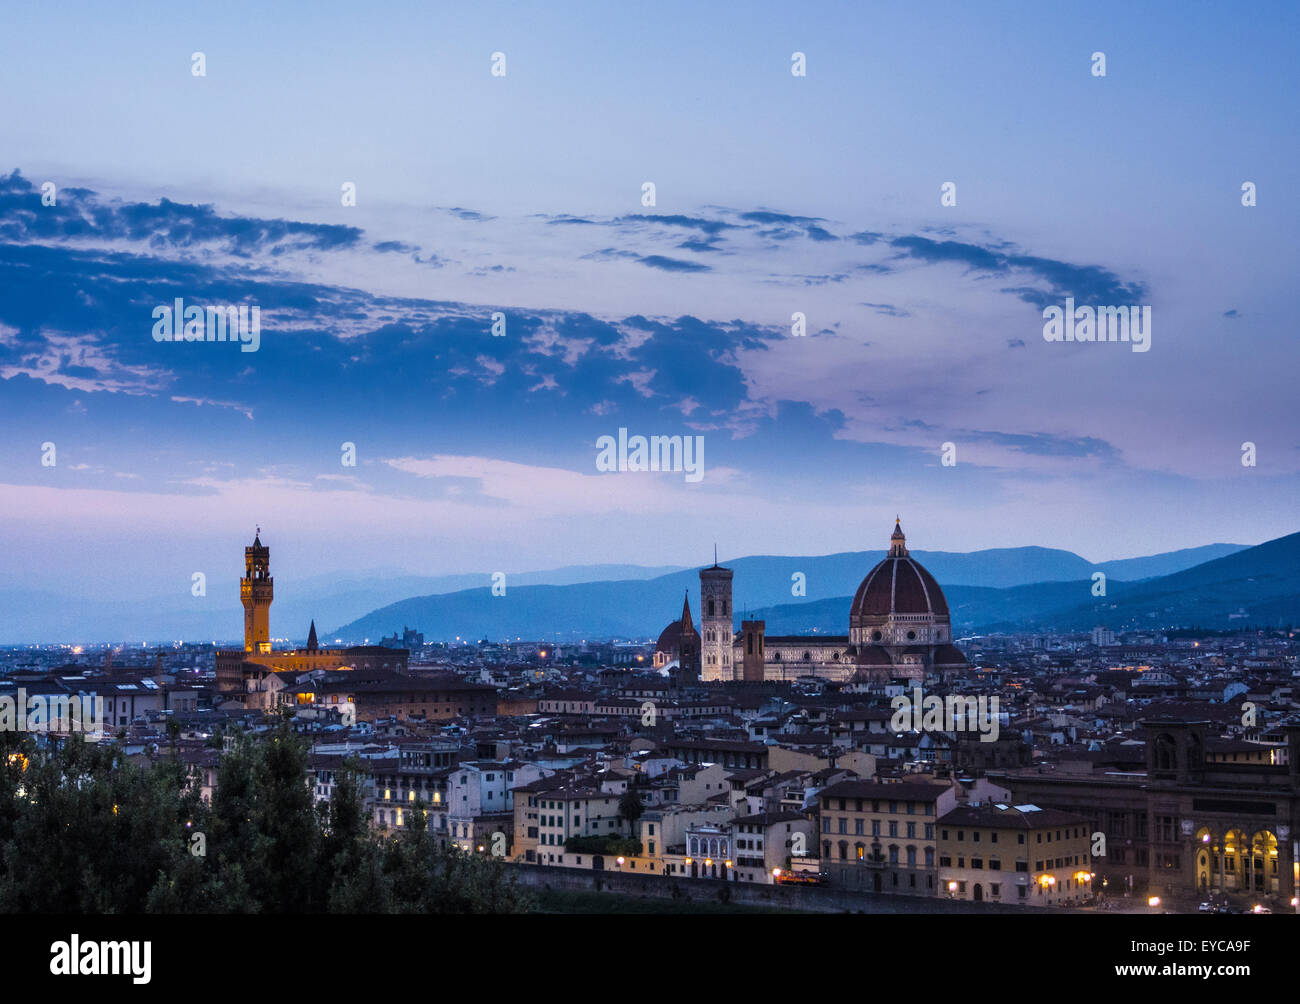 Florence Cathedral at night. Florence, Italy. - Stock Image